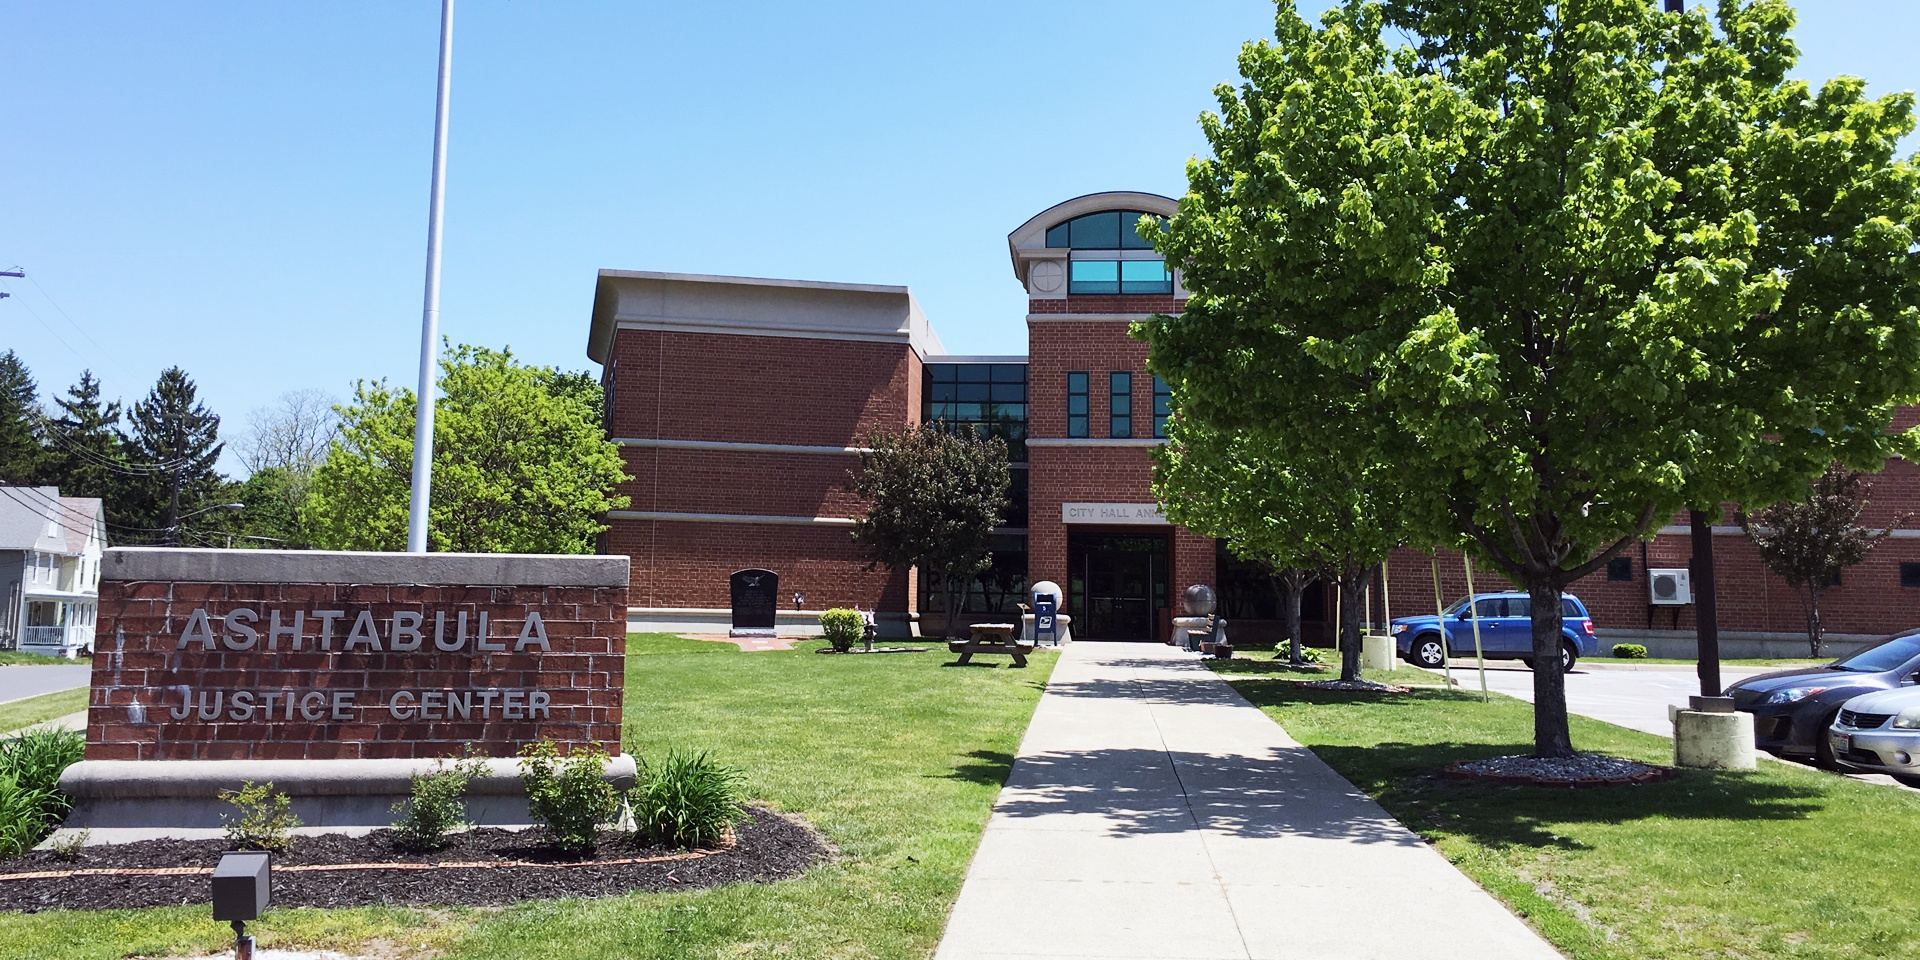 Ashtabula Municipal Court – Serving the City of Ashtabula